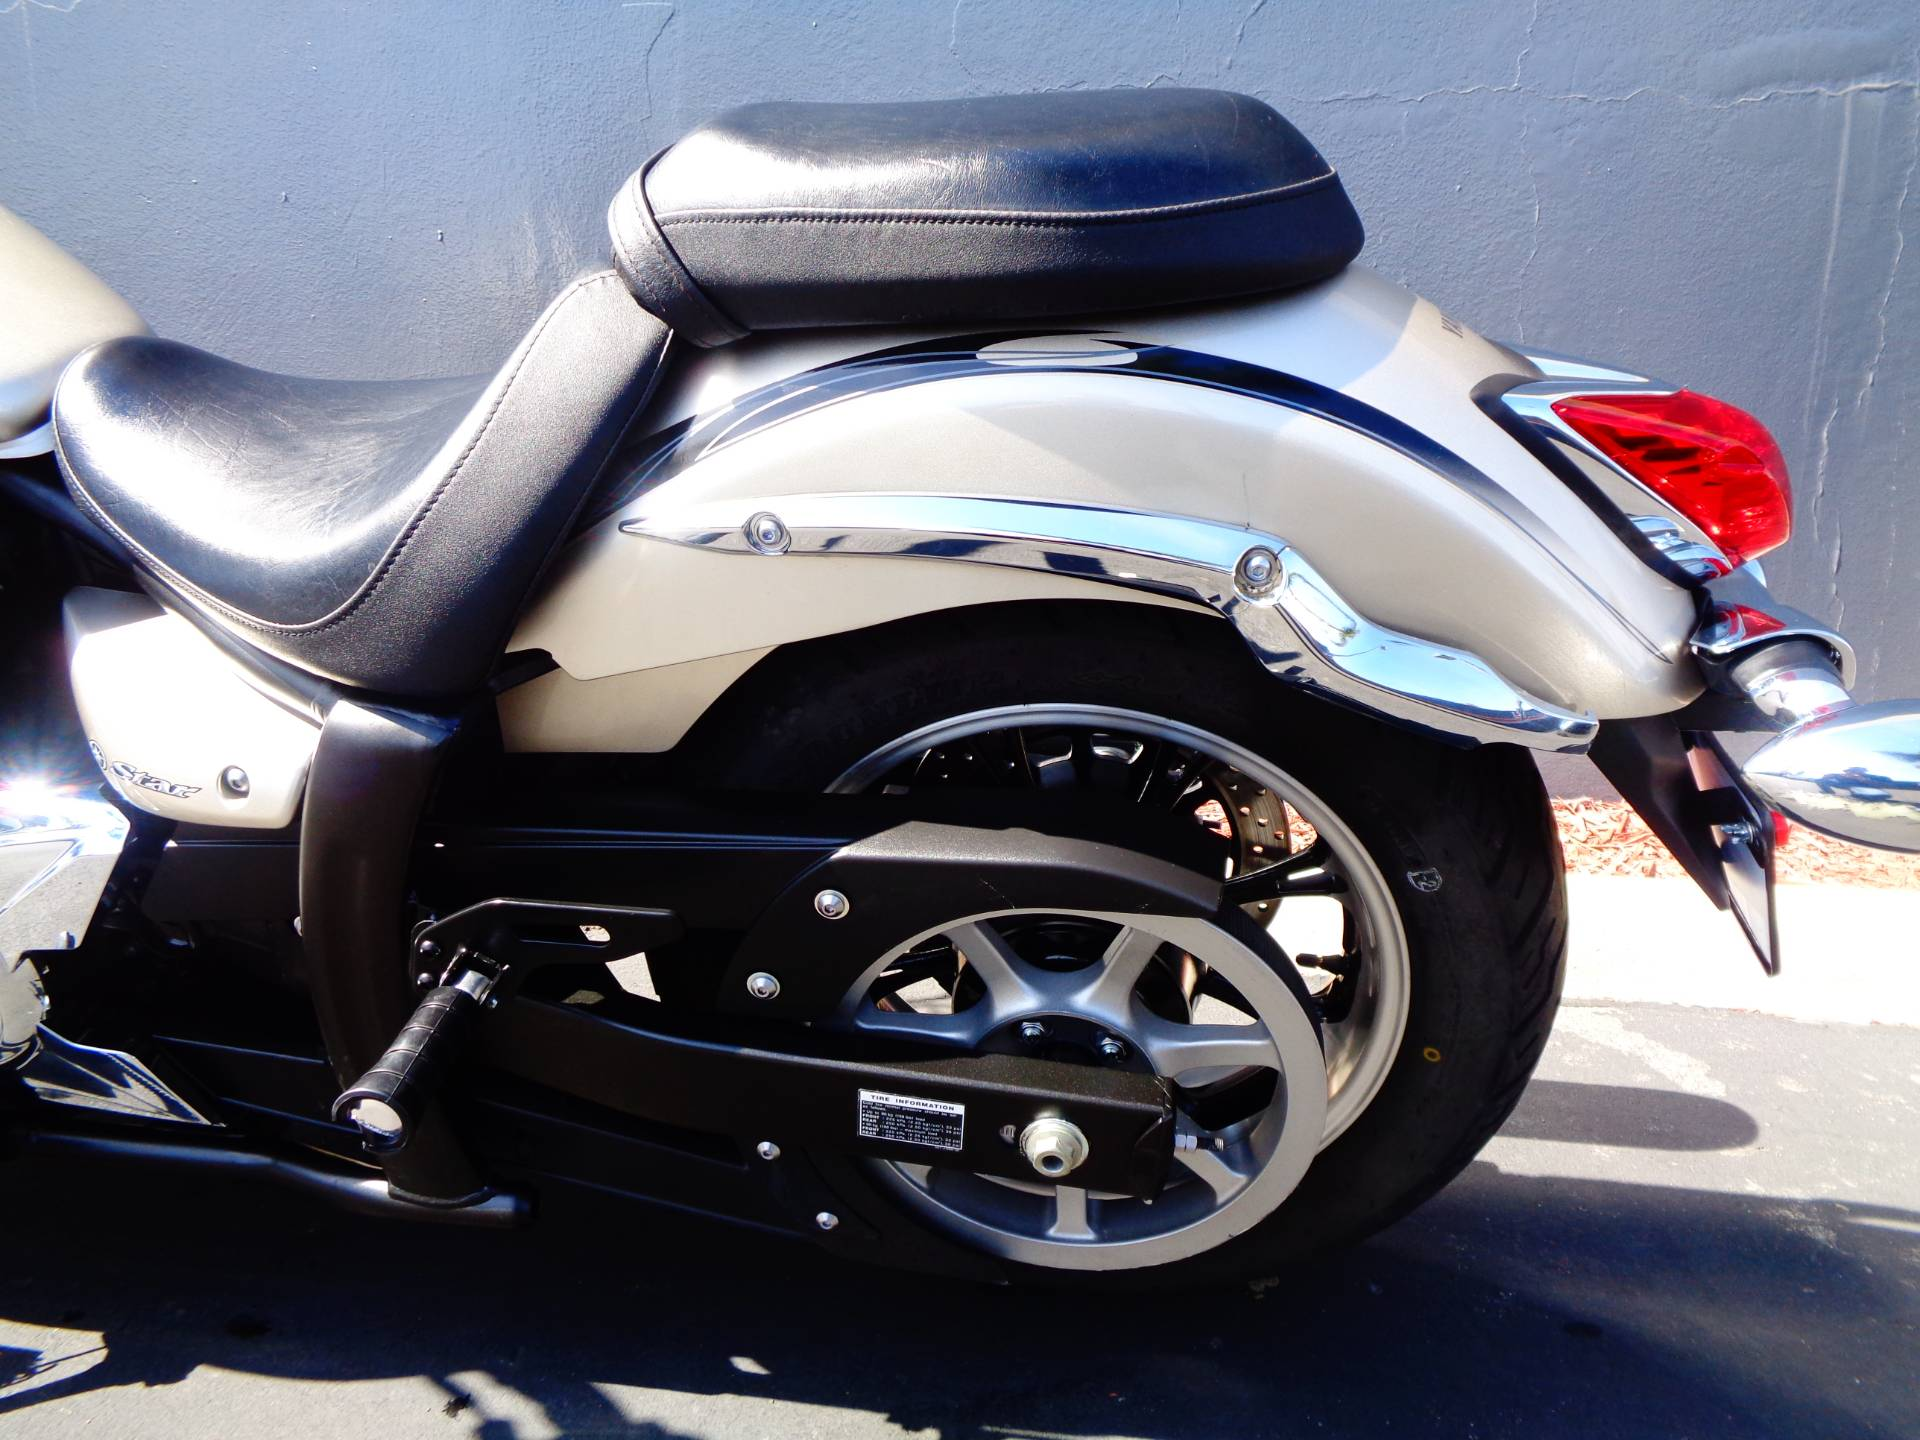 2010 Yamaha V Star 950 Tourer in Chula Vista, California - Photo 17